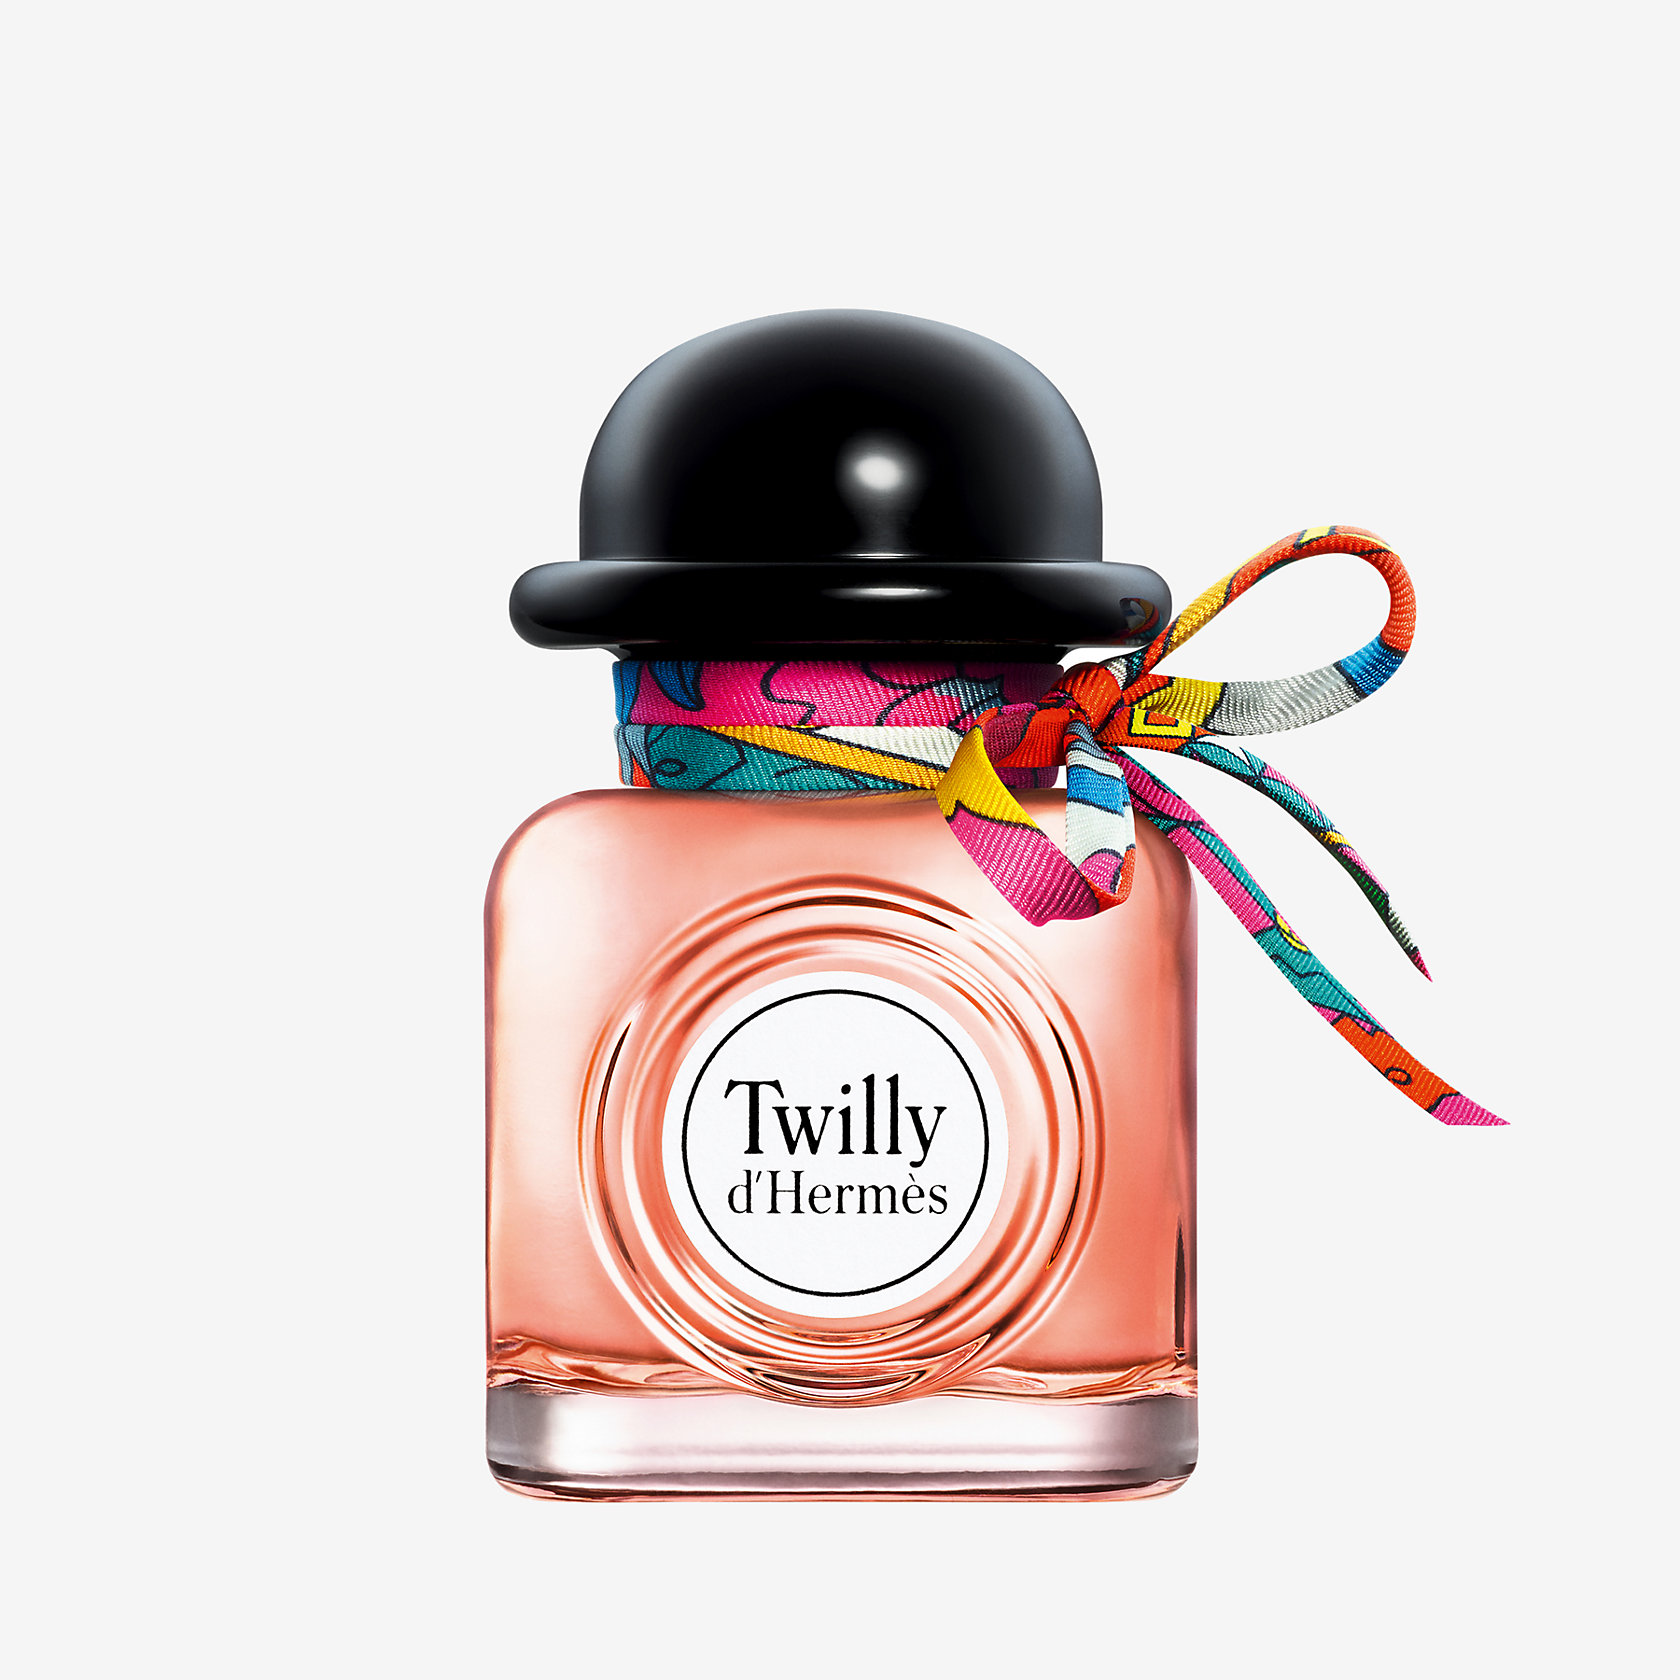 hermes parfum twilly